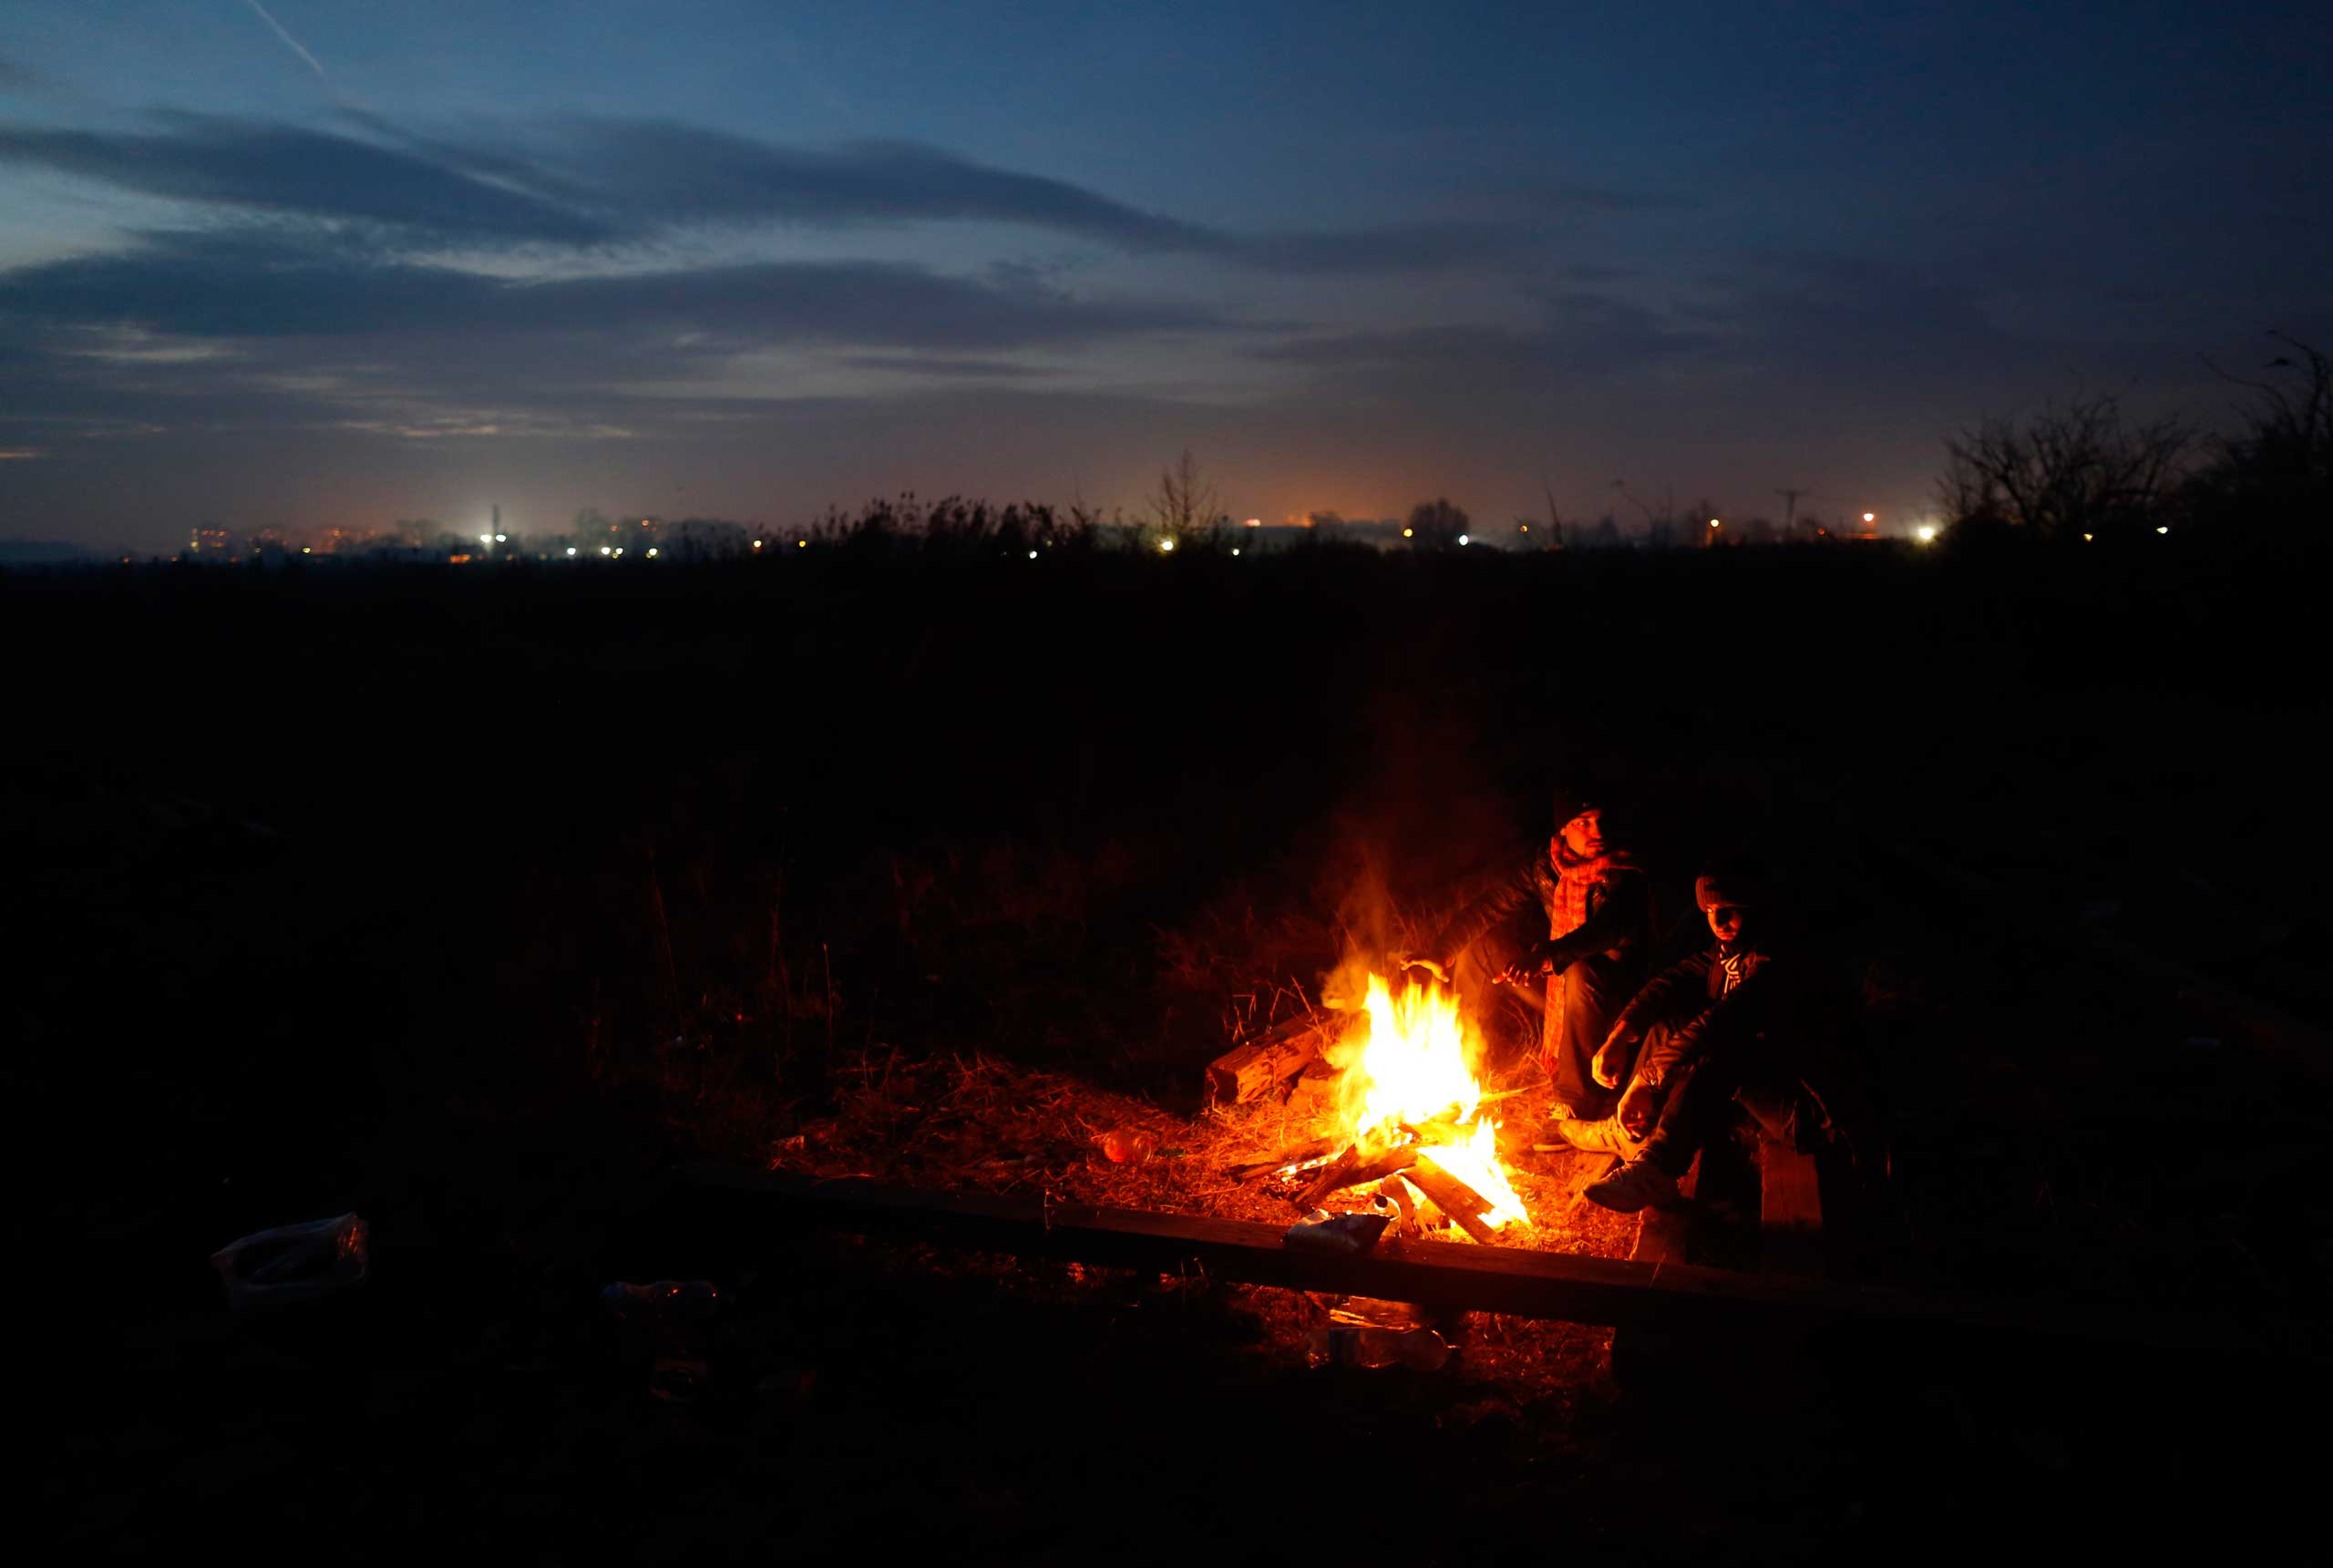 Migrants gather around the fire which they use for cooking and for warmth in the abandoned brick factory in the northern Serbian town of Subotica, near the border between Serbia and Hungary, on Dec. 15, 2014.